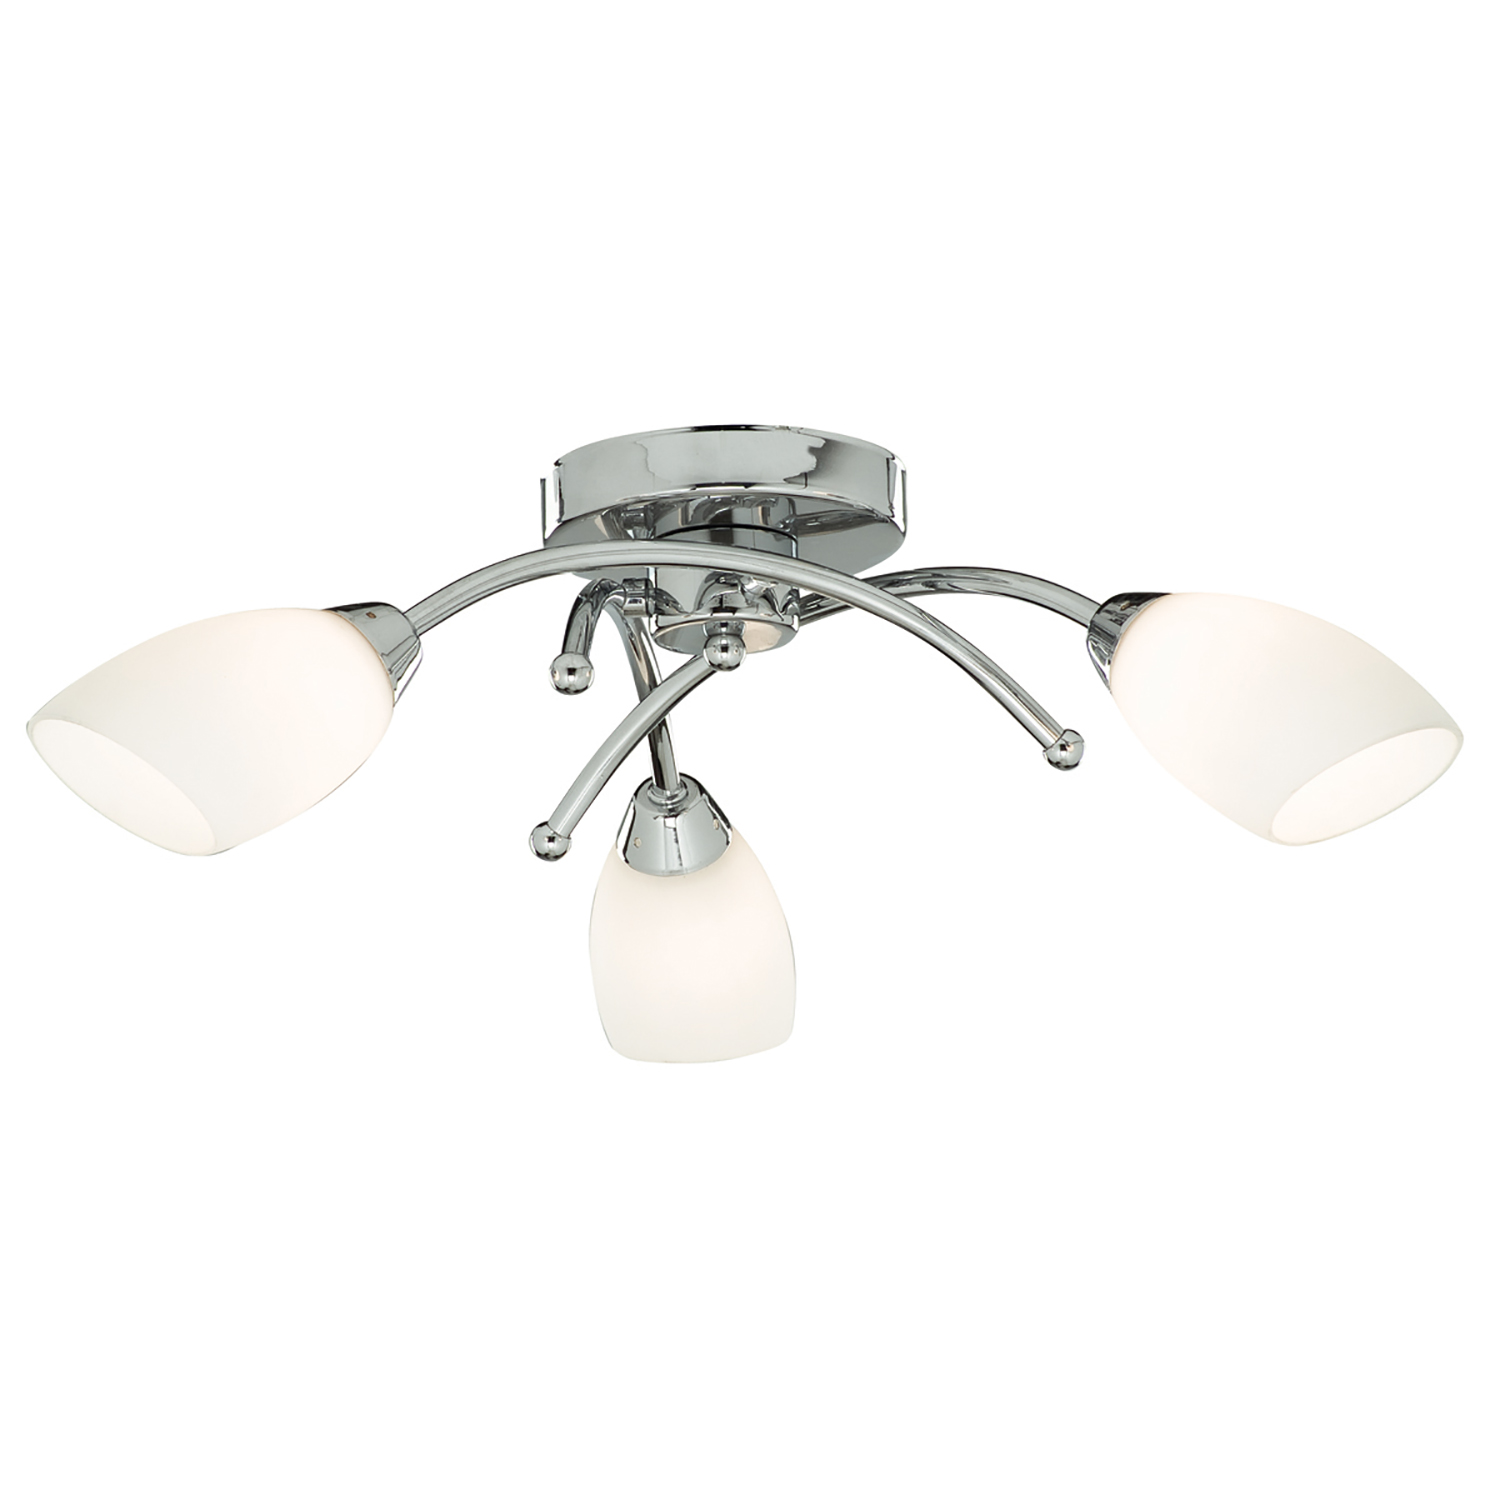 Image of Searchlight Bathroom Ip44 3 Light Flush, Chrome